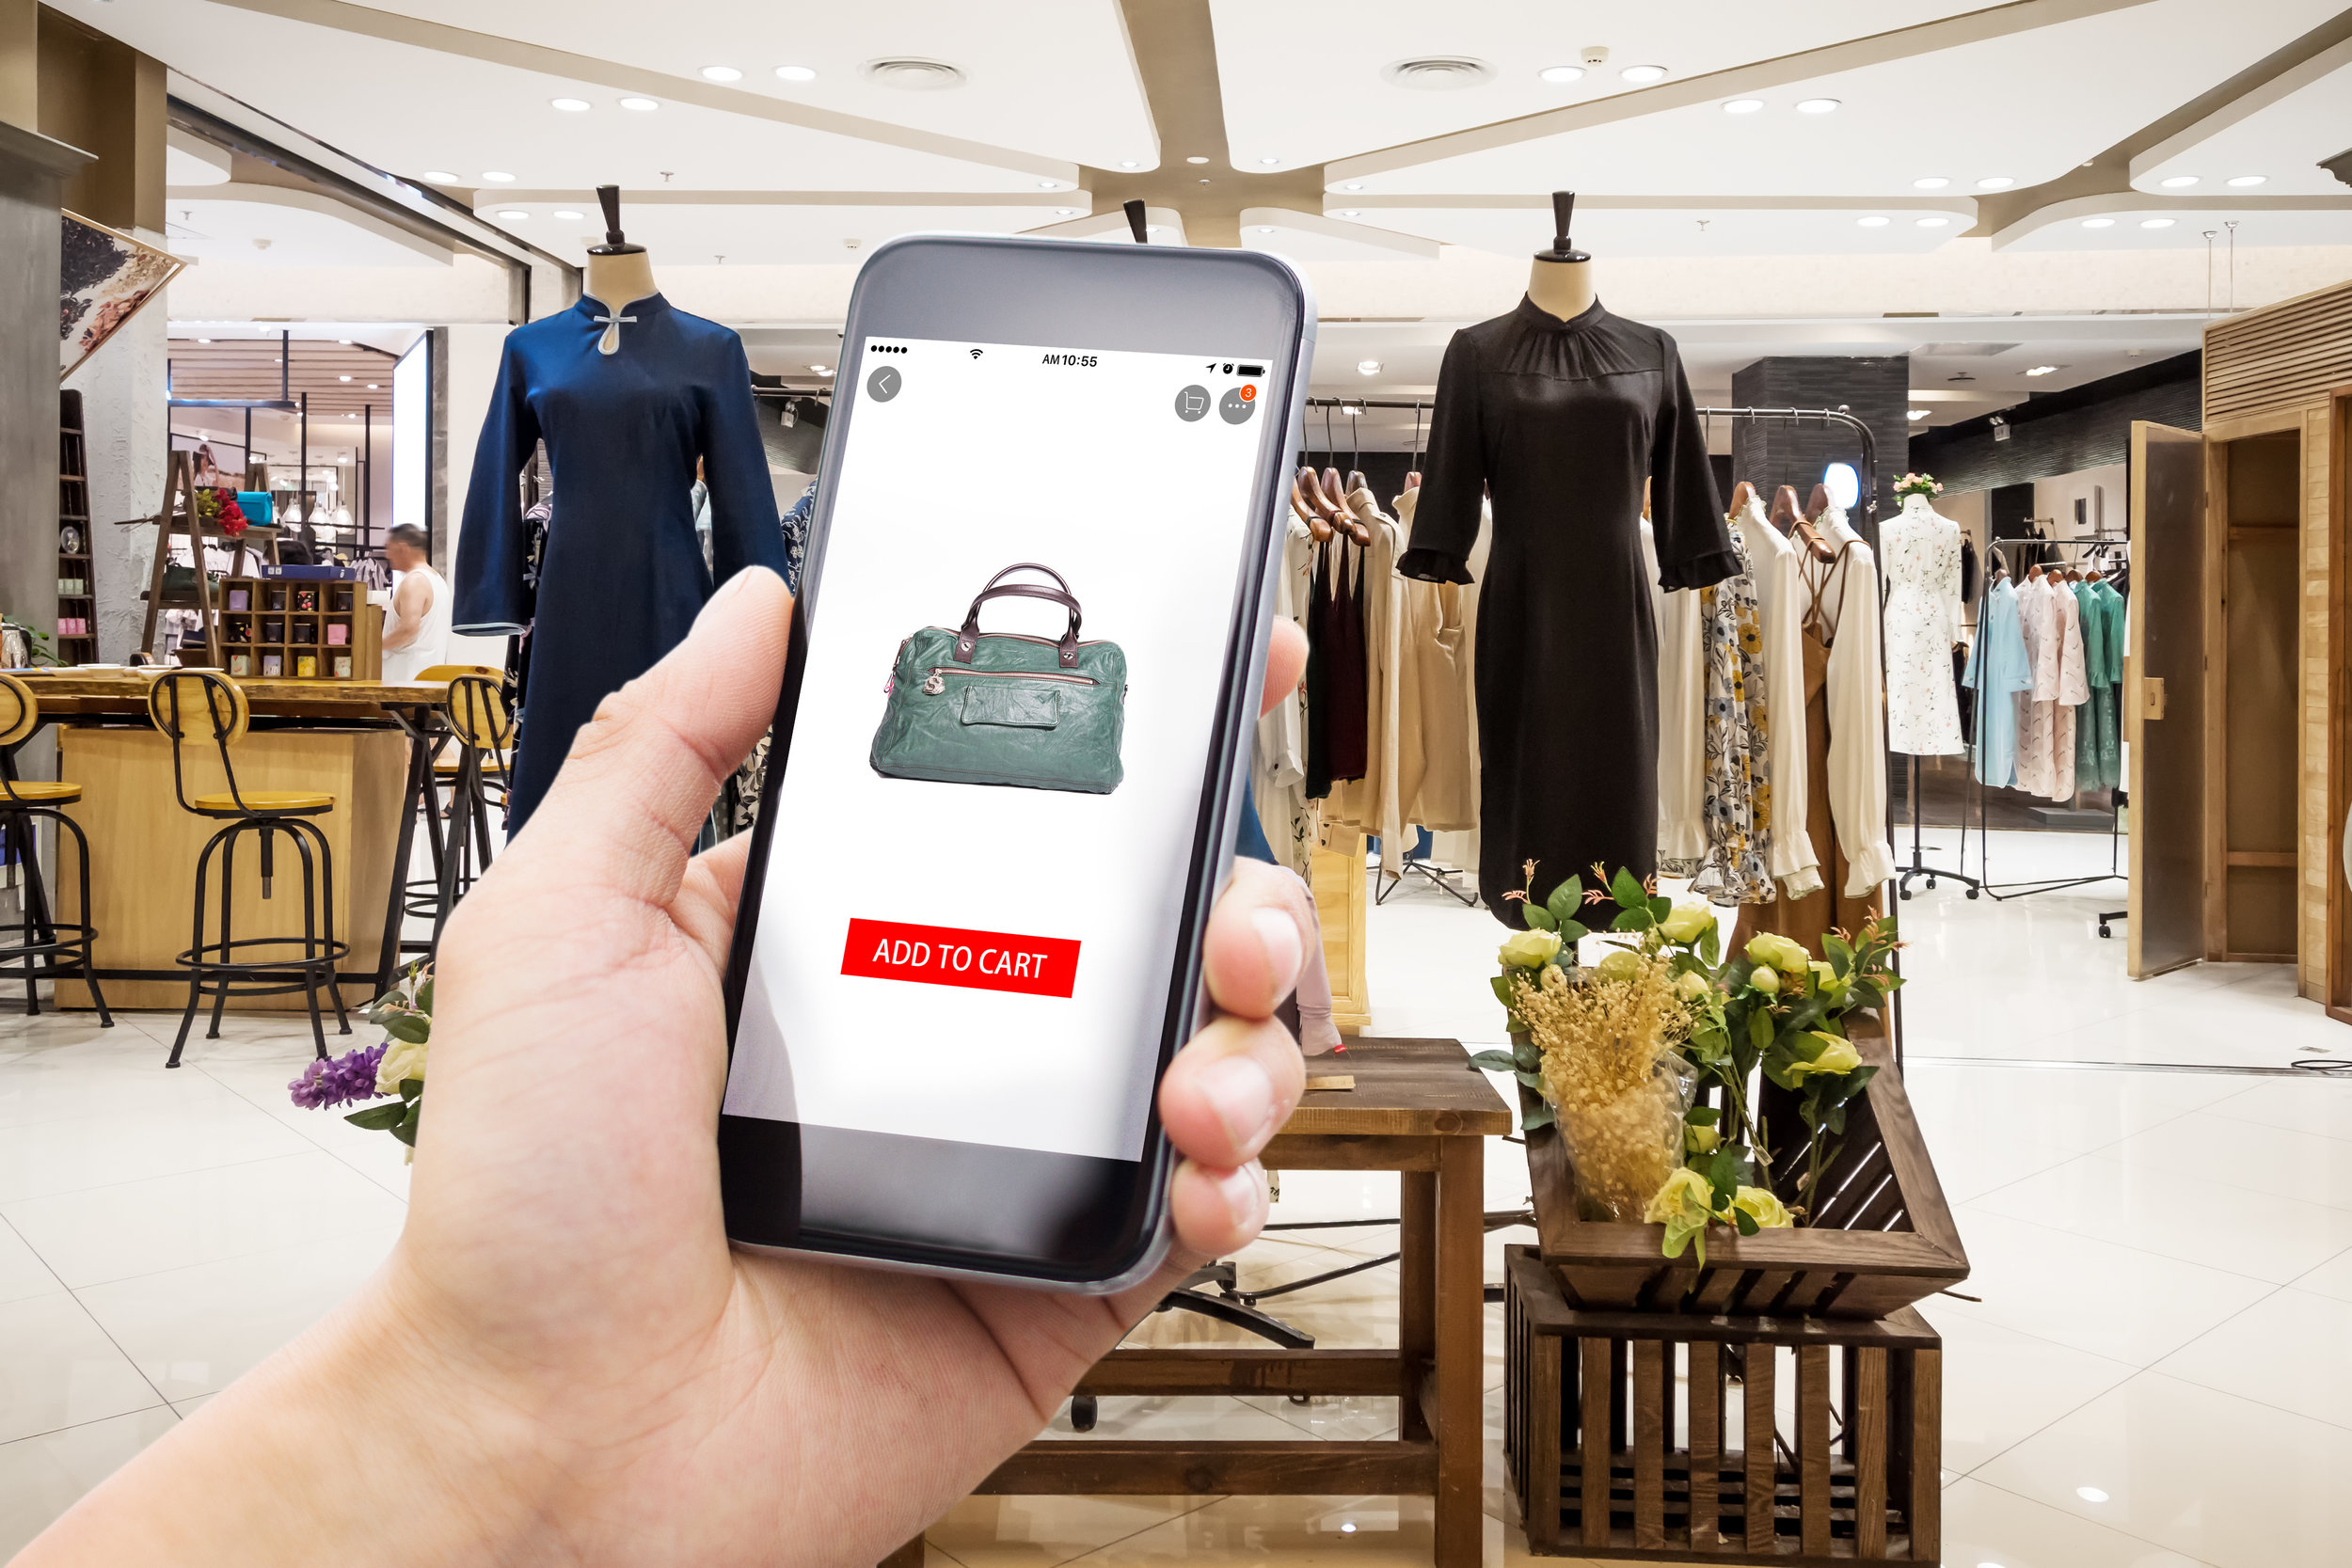 MOBILE - & IN-STORE CONNECTIVITY